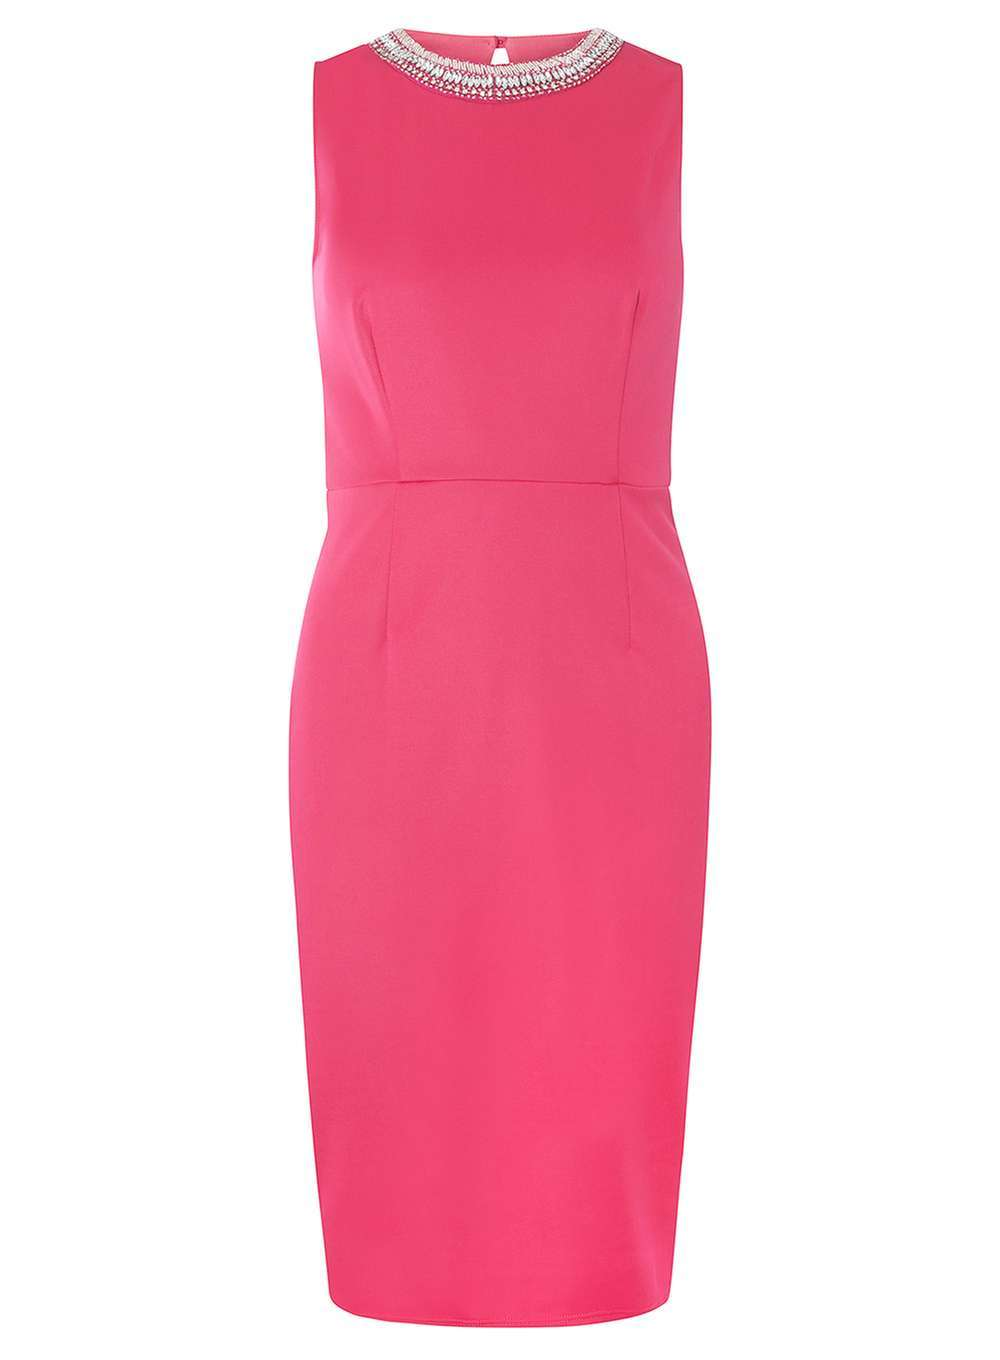 Womens Embellished Pencil Dress Pink - style: shift; pattern: plain; sleeve style: sleeveless; predominant colour: hot pink; occasions: evening; length: on the knee; fit: body skimming; fibres: polyester/polyamide - stretch; neckline: crew; sleeve length: sleeveless; pattern type: fabric; texture group: jersey - stretchy/drapey; embellishment: crystals/glass; season: a/w 2016; wardrobe: event; embellishment location: bust